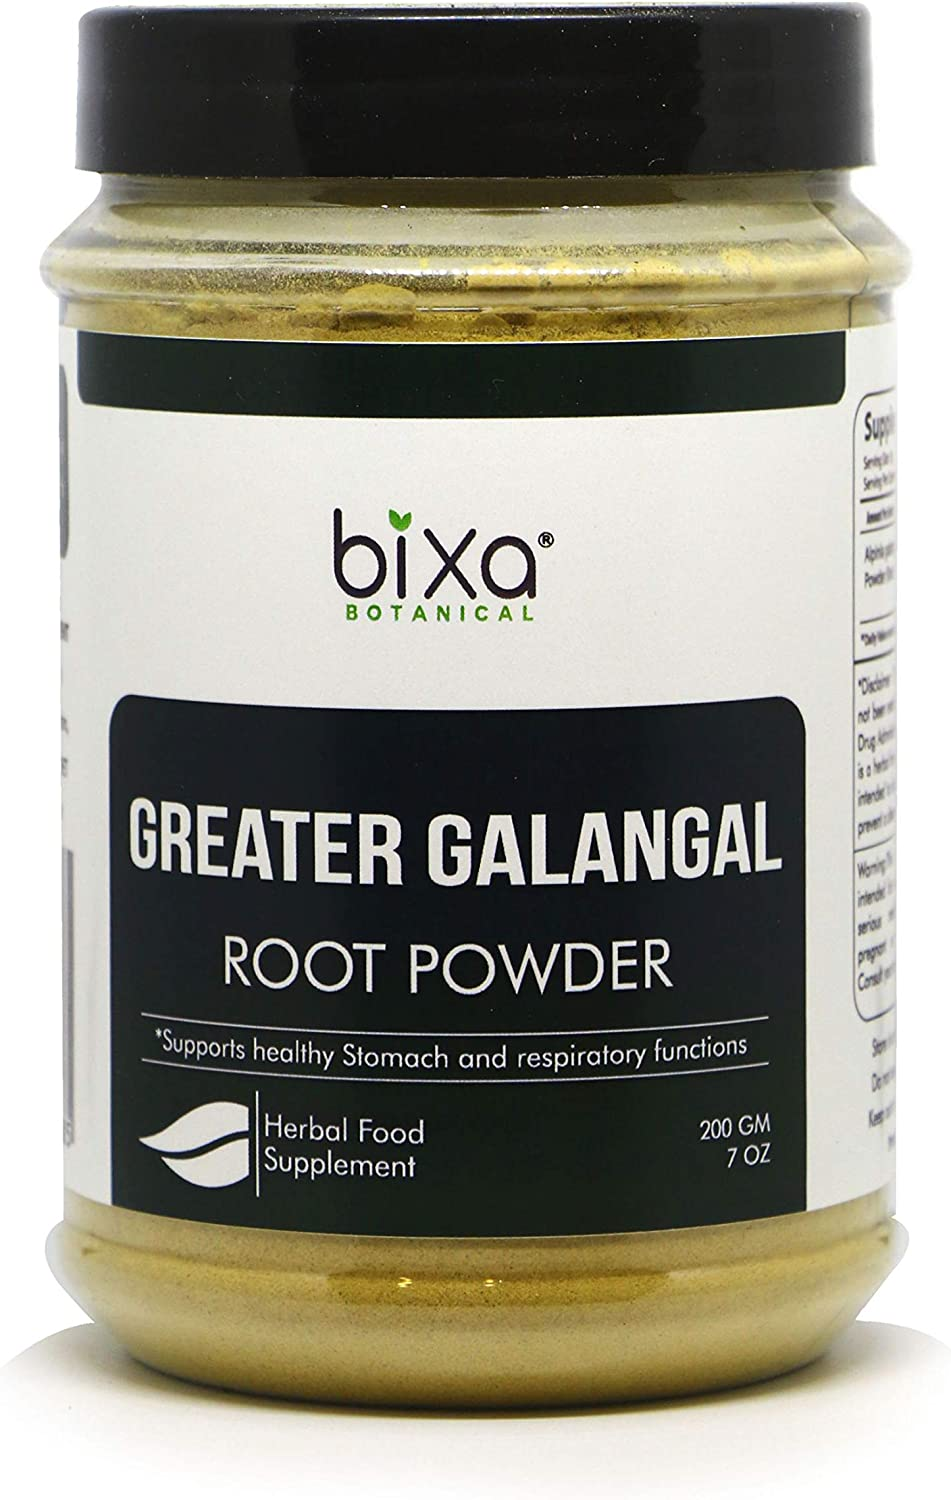 Greater Galangal Root Powder (Kulinjan/Alpinia Galanga), Supports Healthy Stomach and Respiratory Functions by Bixa Botanical - 7 Oz (200g)